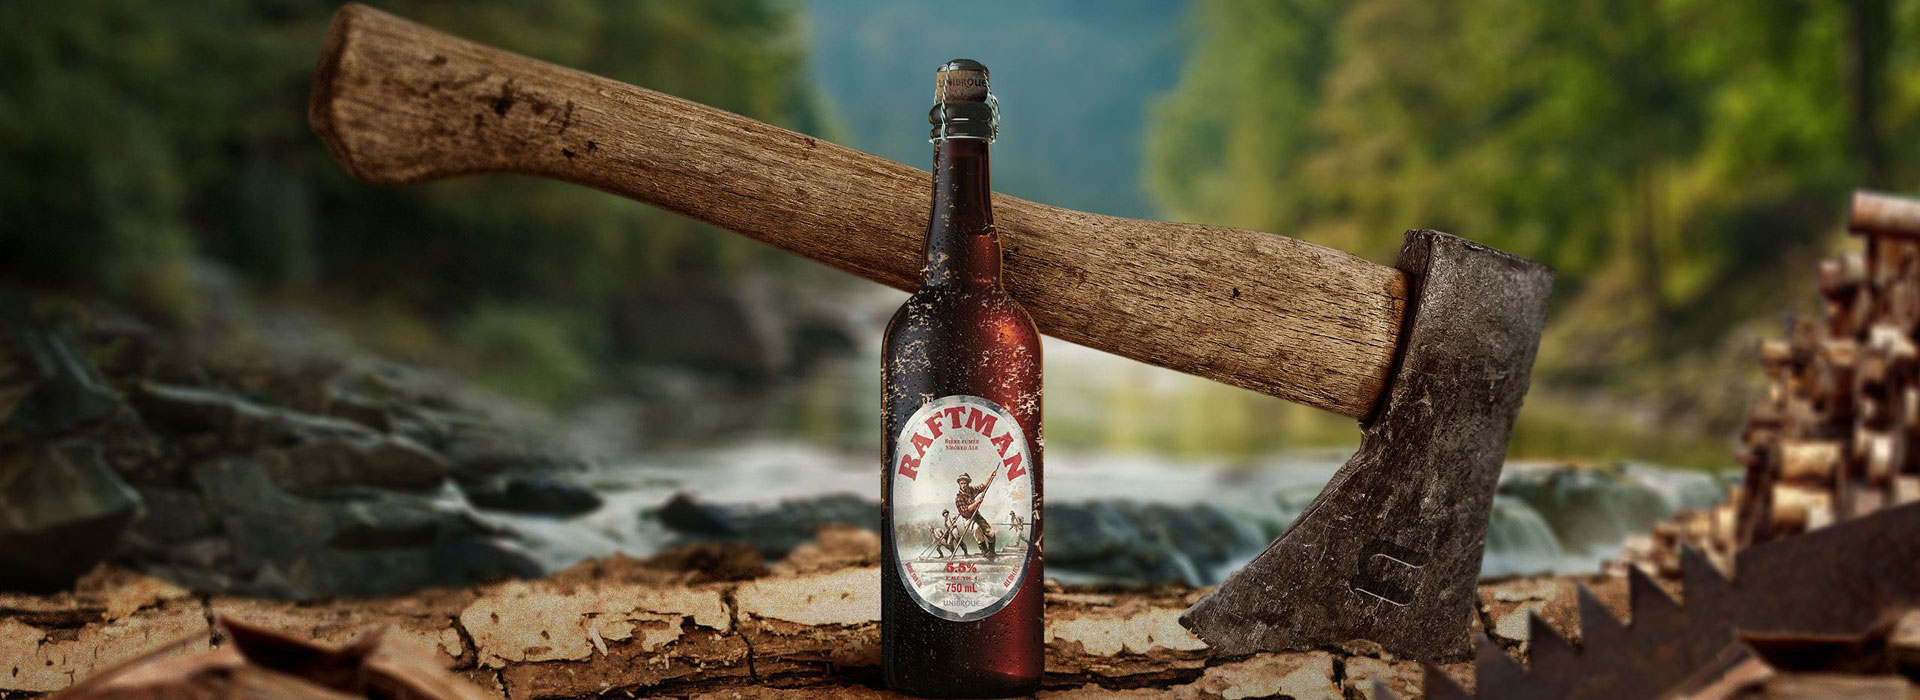 Raftman beer Unibroue